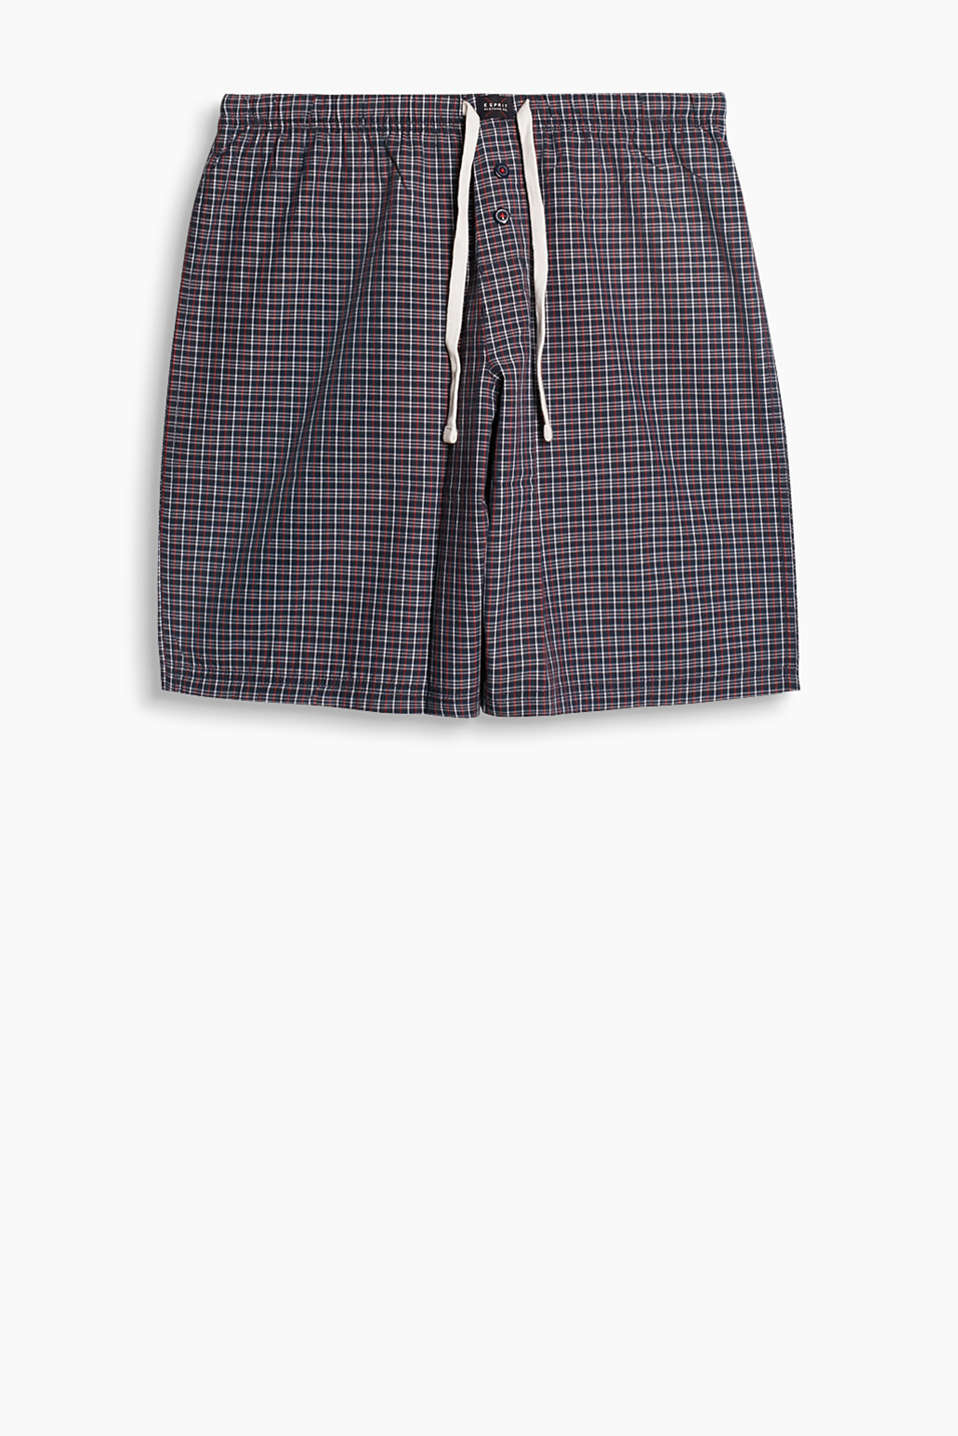 With a fashionable woven check pattern and an elasticated logo waistband